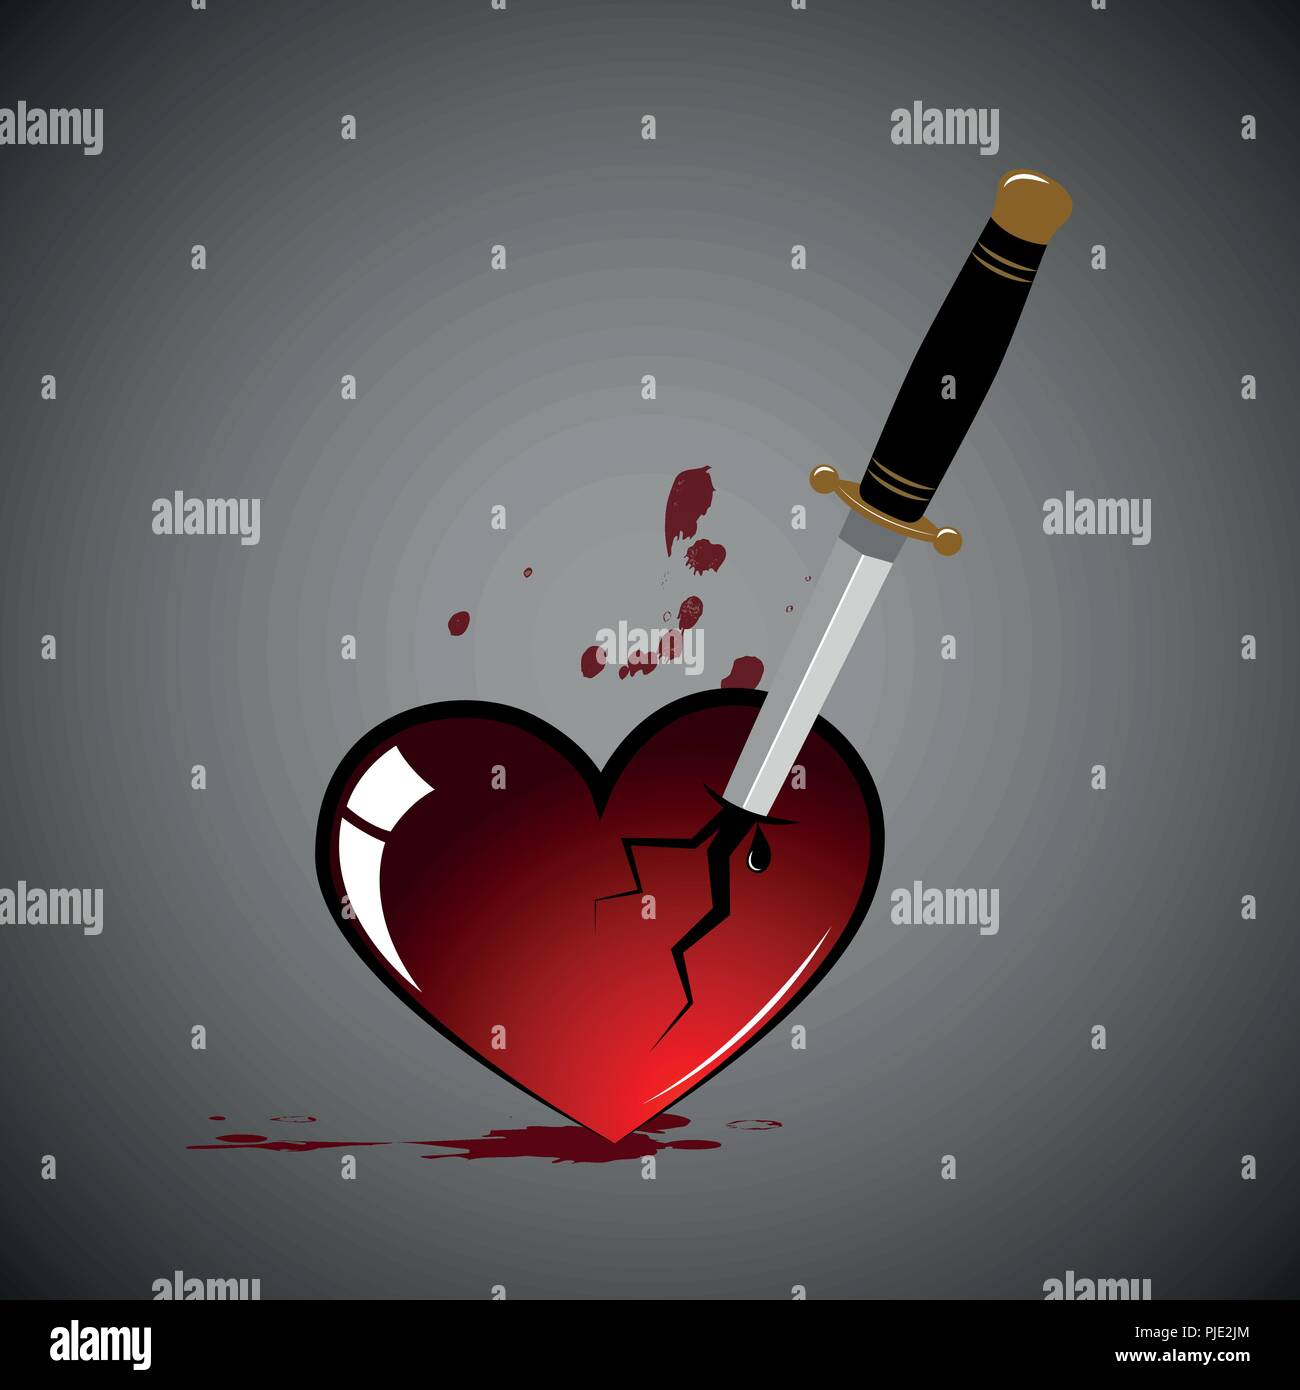 broken heart with blood and dagger vector illustration EPS10 - Stock Vector